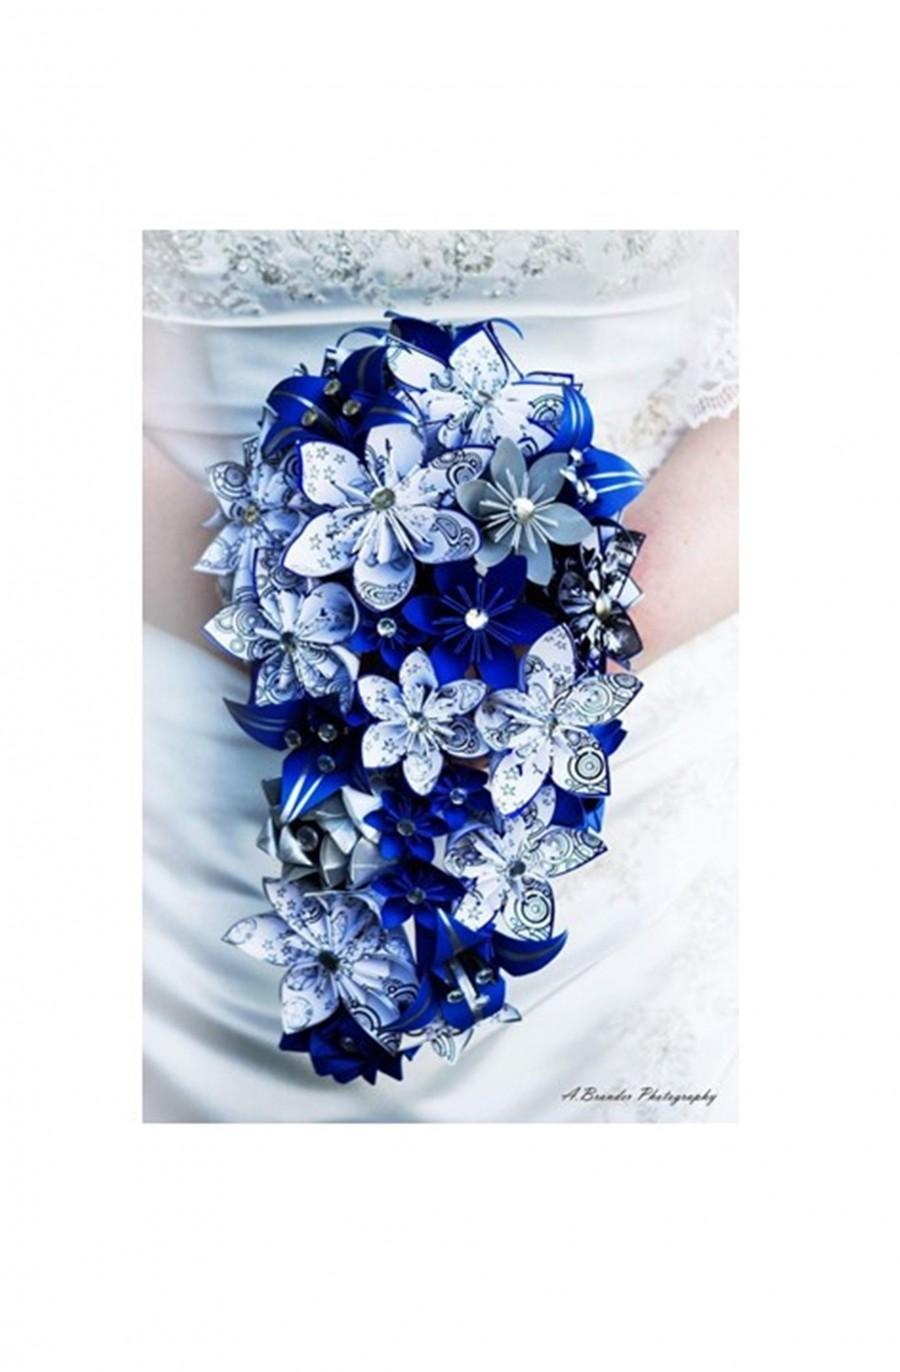 Wedding - Doctor Who Gallifreyan Cascading Paper Flowers Bouquet- Your Choice of Color Scheme, Bridal bouquet, paper roses & lilies origami